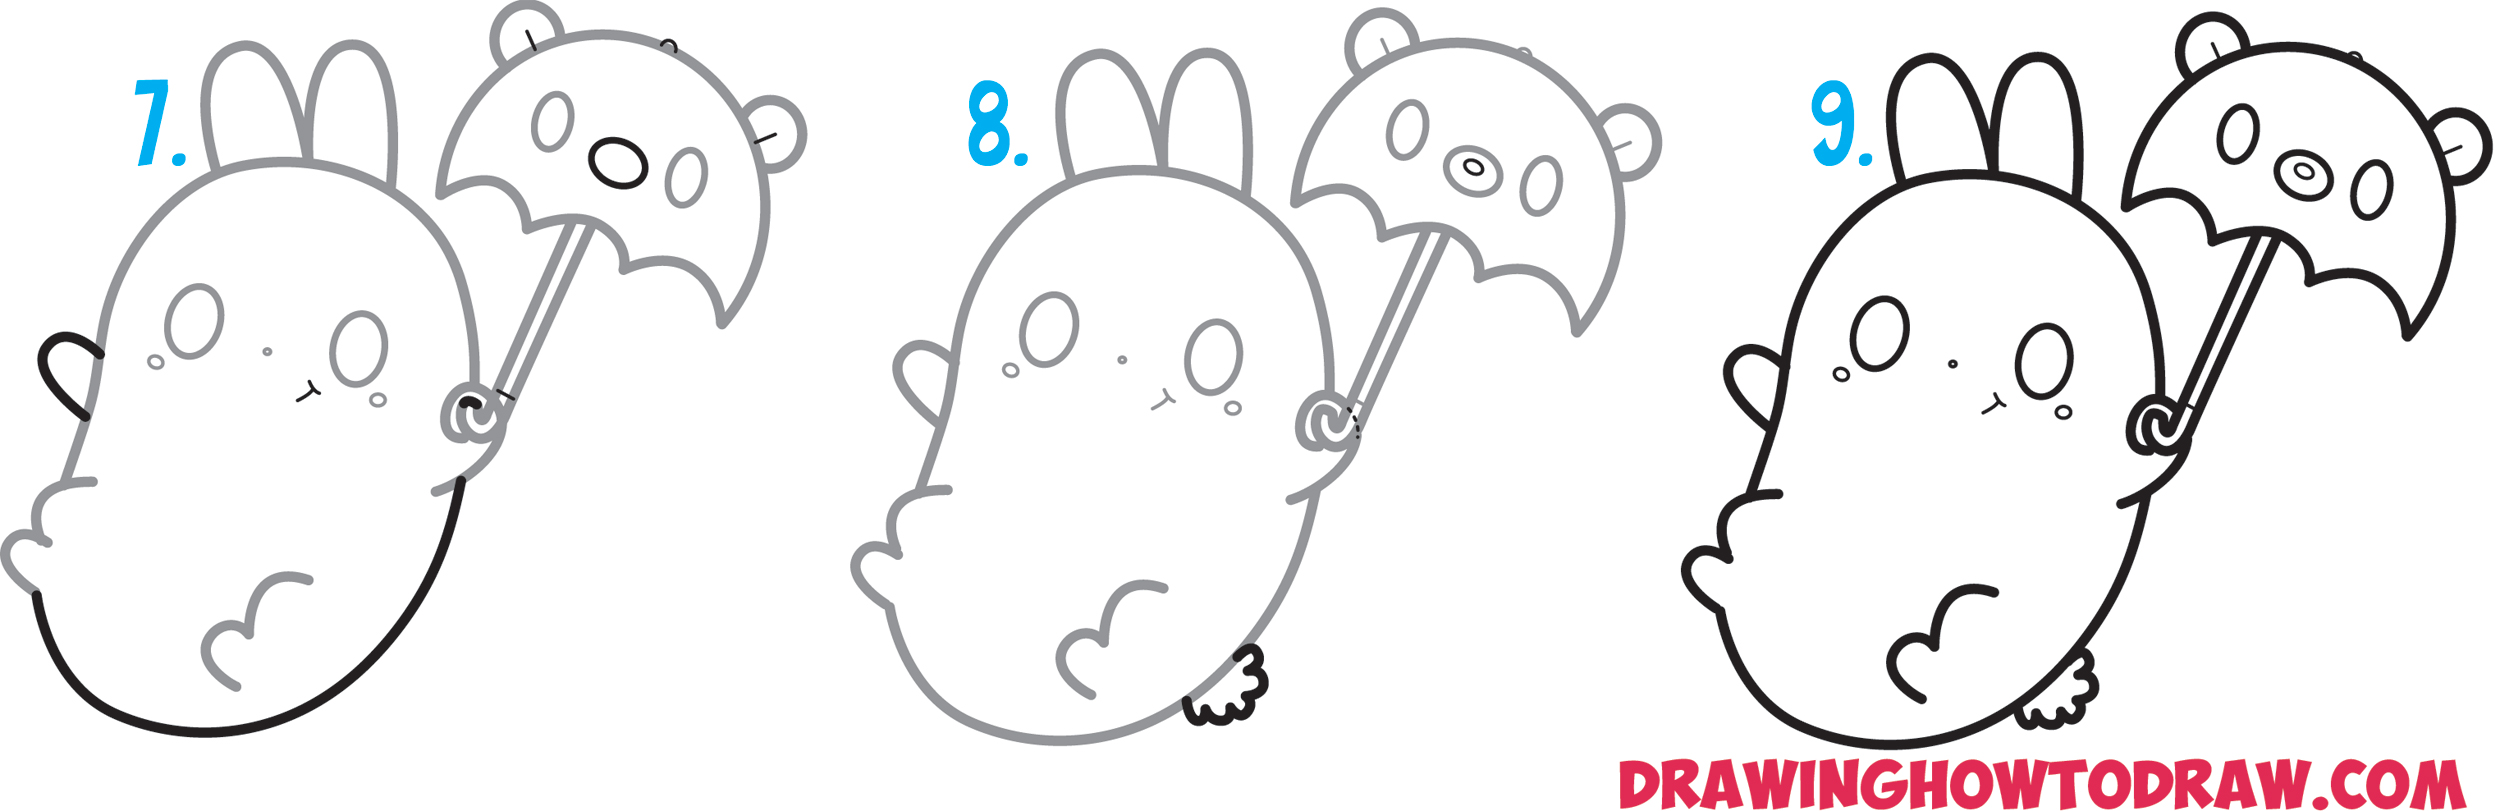 Learn How to Draw a Cute Kawaii Bunny Rabbit Holding a Bear Umbrella Easy Step by Step Drawing Tutorial for Kids and Beginners